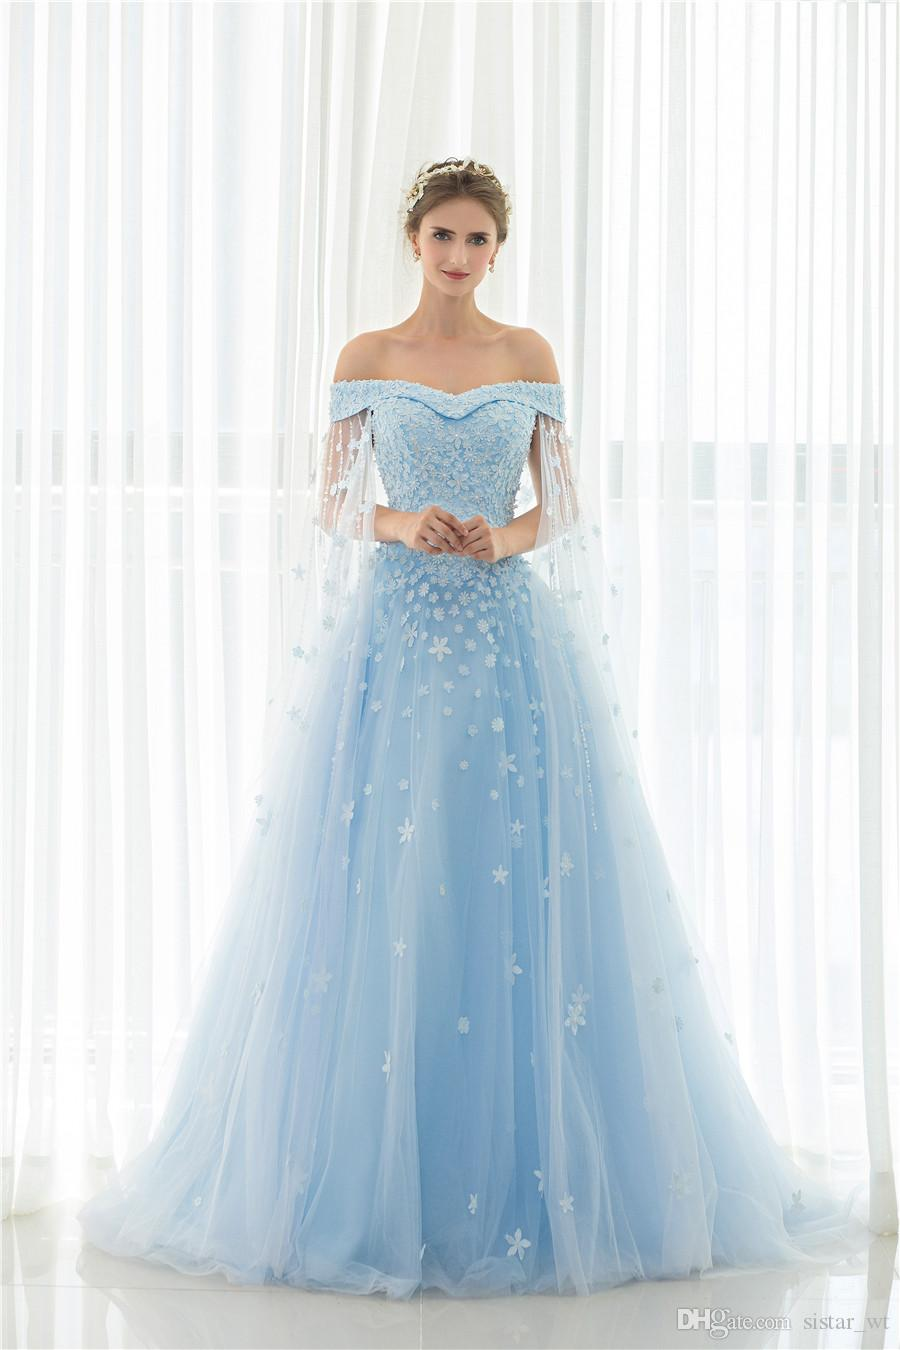 2017 sexy lace off shoulder appliques prom dresses beads tulle big 2017 sexy lace off shoulder appliques prom dresses beads tulle big girls pageant evening party celebrity catwalk lady bridesmaid bride gown elegant special ombrellifo Choice Image